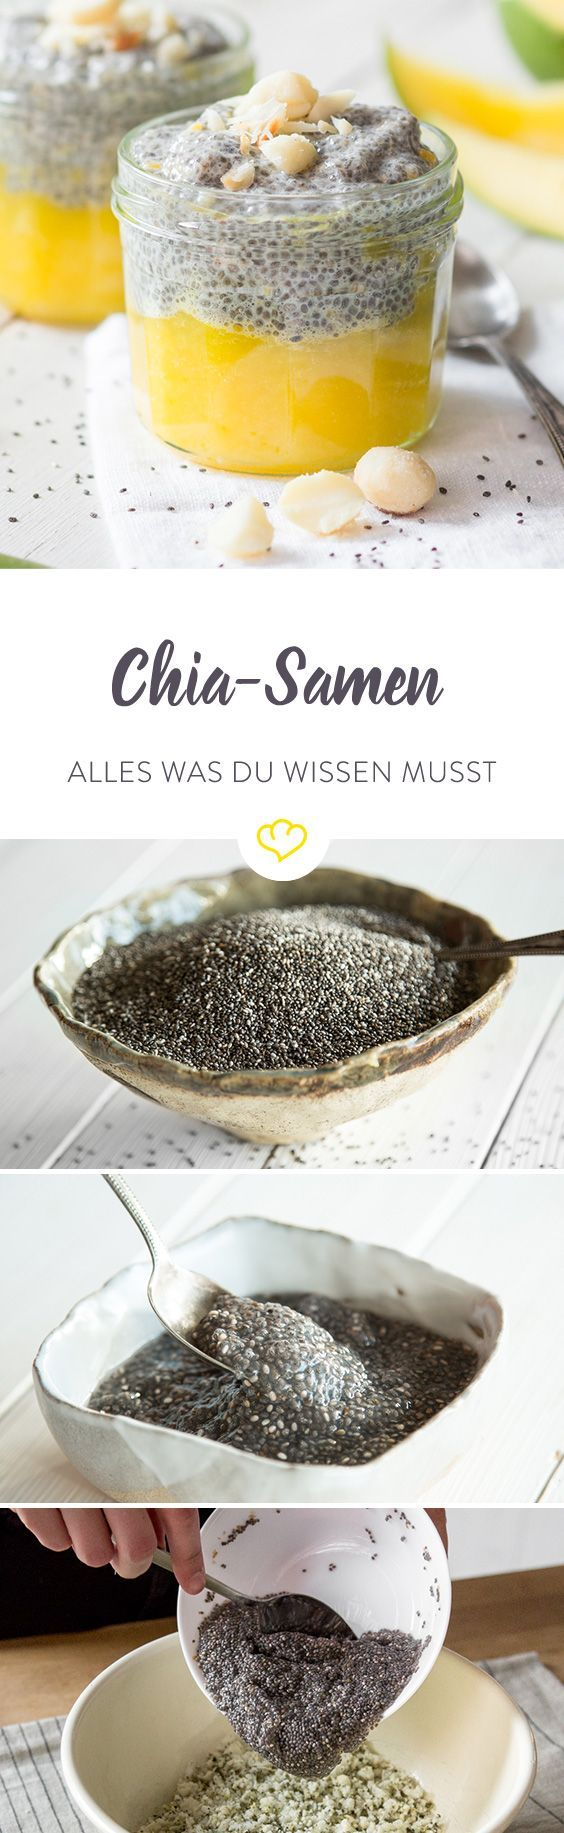 chia samen so bereitest du die powerk rner zu chia samen rezepte pinterest essen m sli. Black Bedroom Furniture Sets. Home Design Ideas